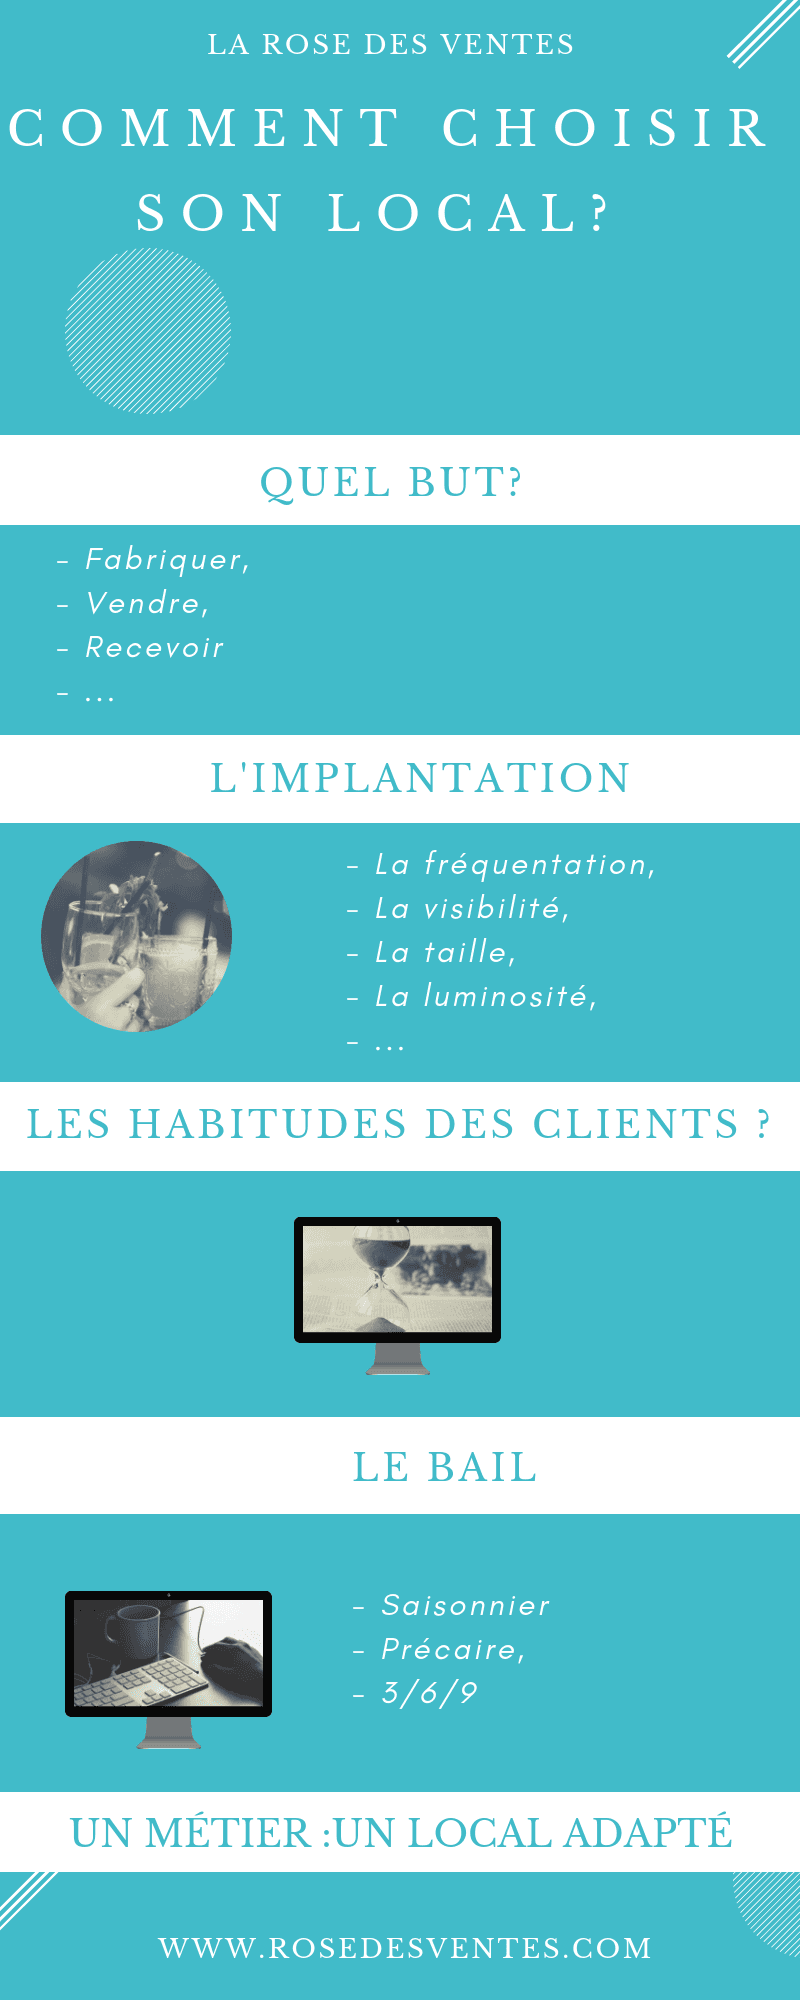 Infographie Comment choisir son local?